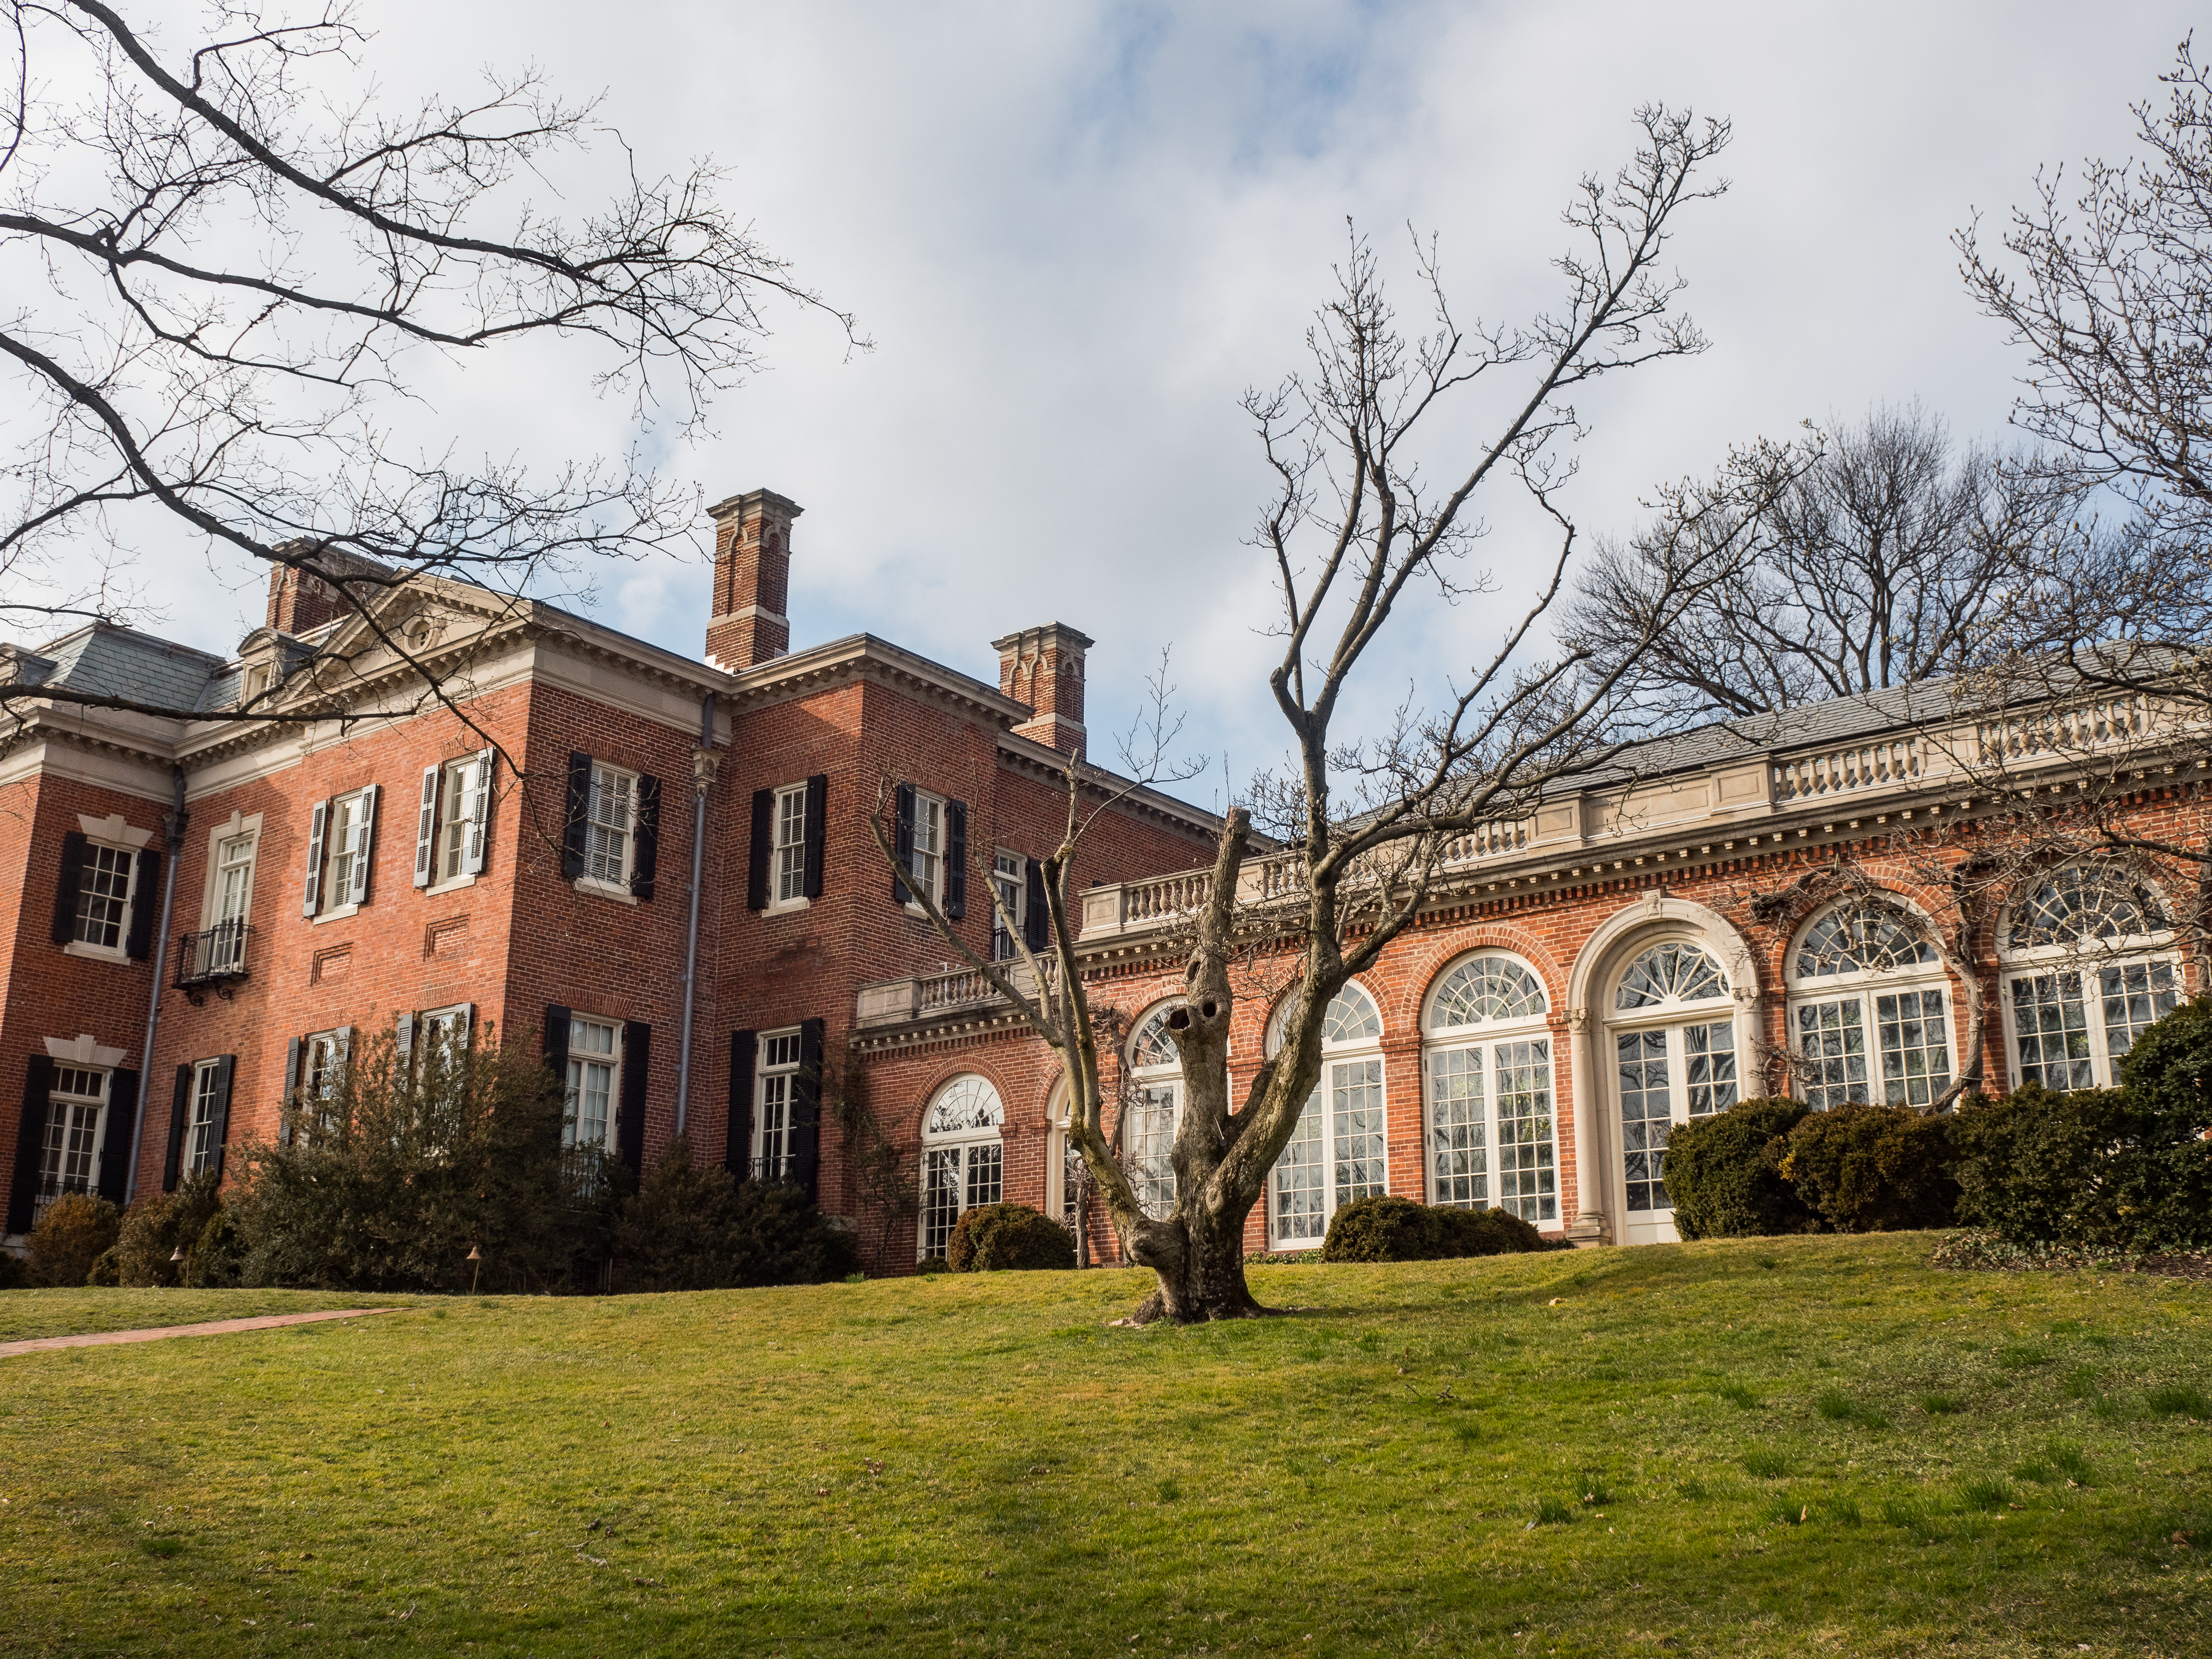 The Dumbarton Oaks estate in Georgetown, an elaborate mansion made of brick. Large windows line a wing of the estate.